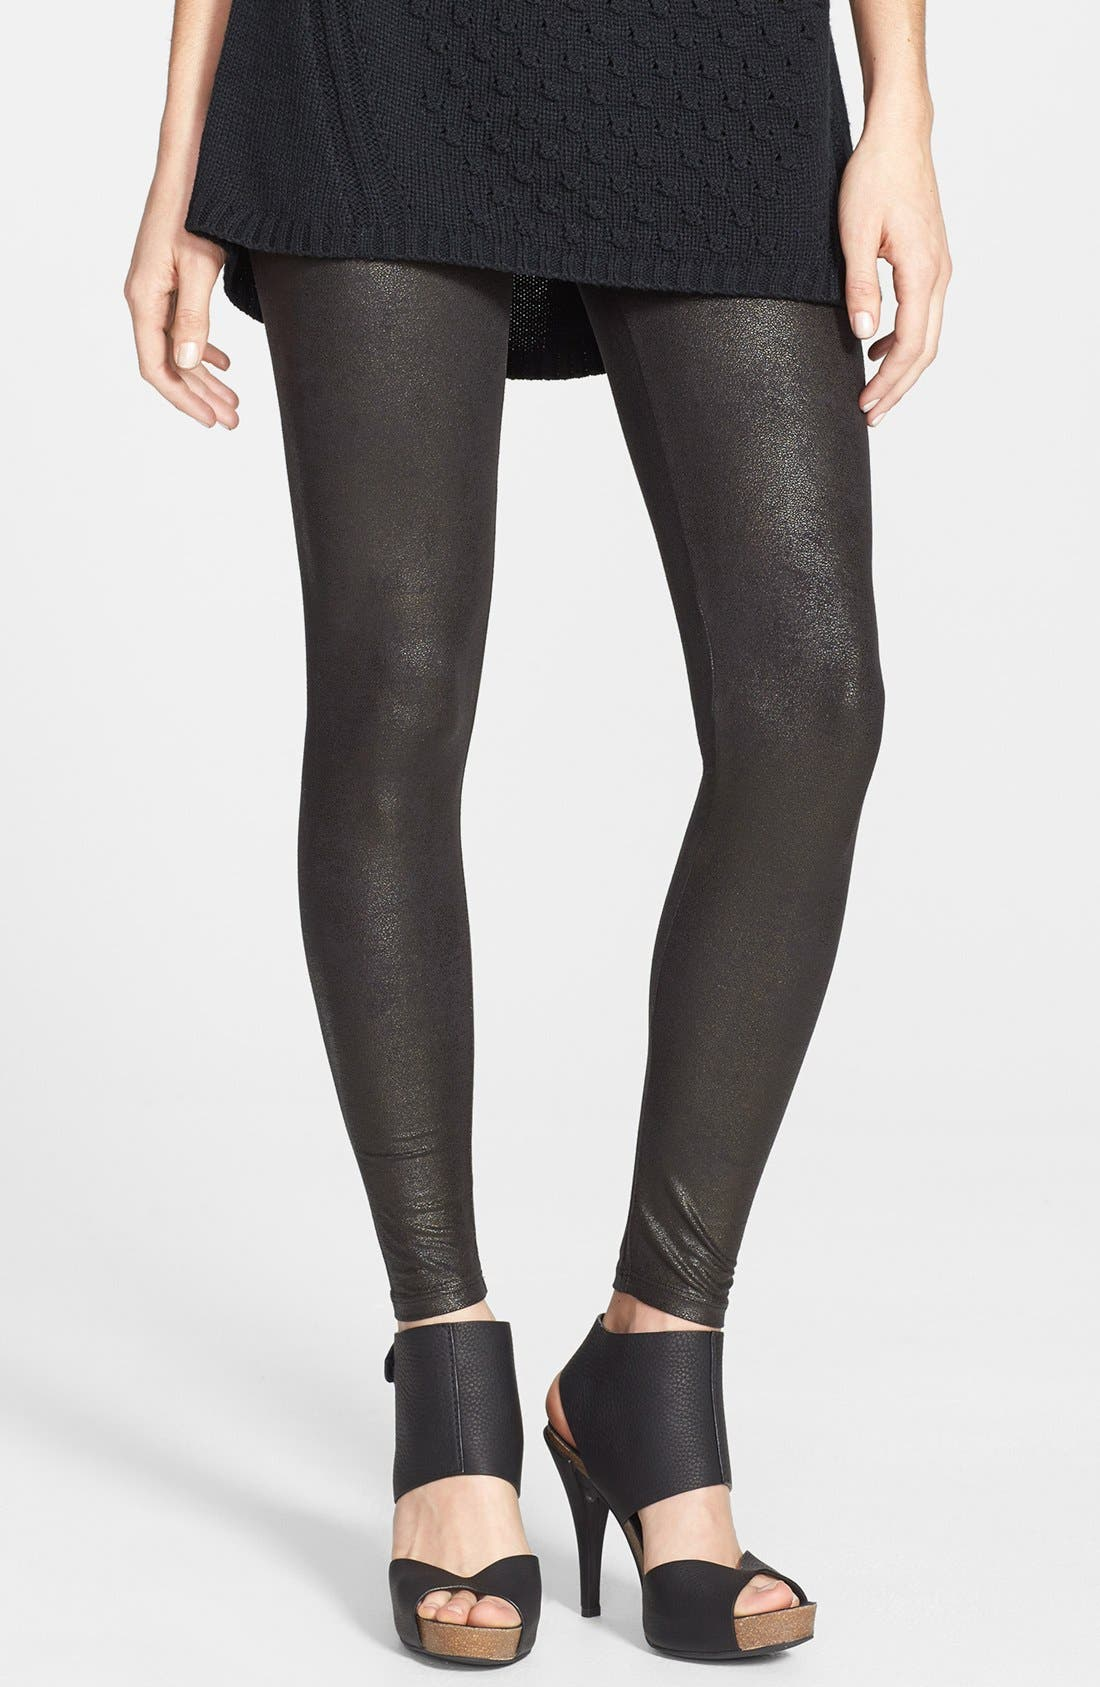 Alternate Image 1 Selected - Yummie by Heather Thomson Faux Leather Shaper Leggings